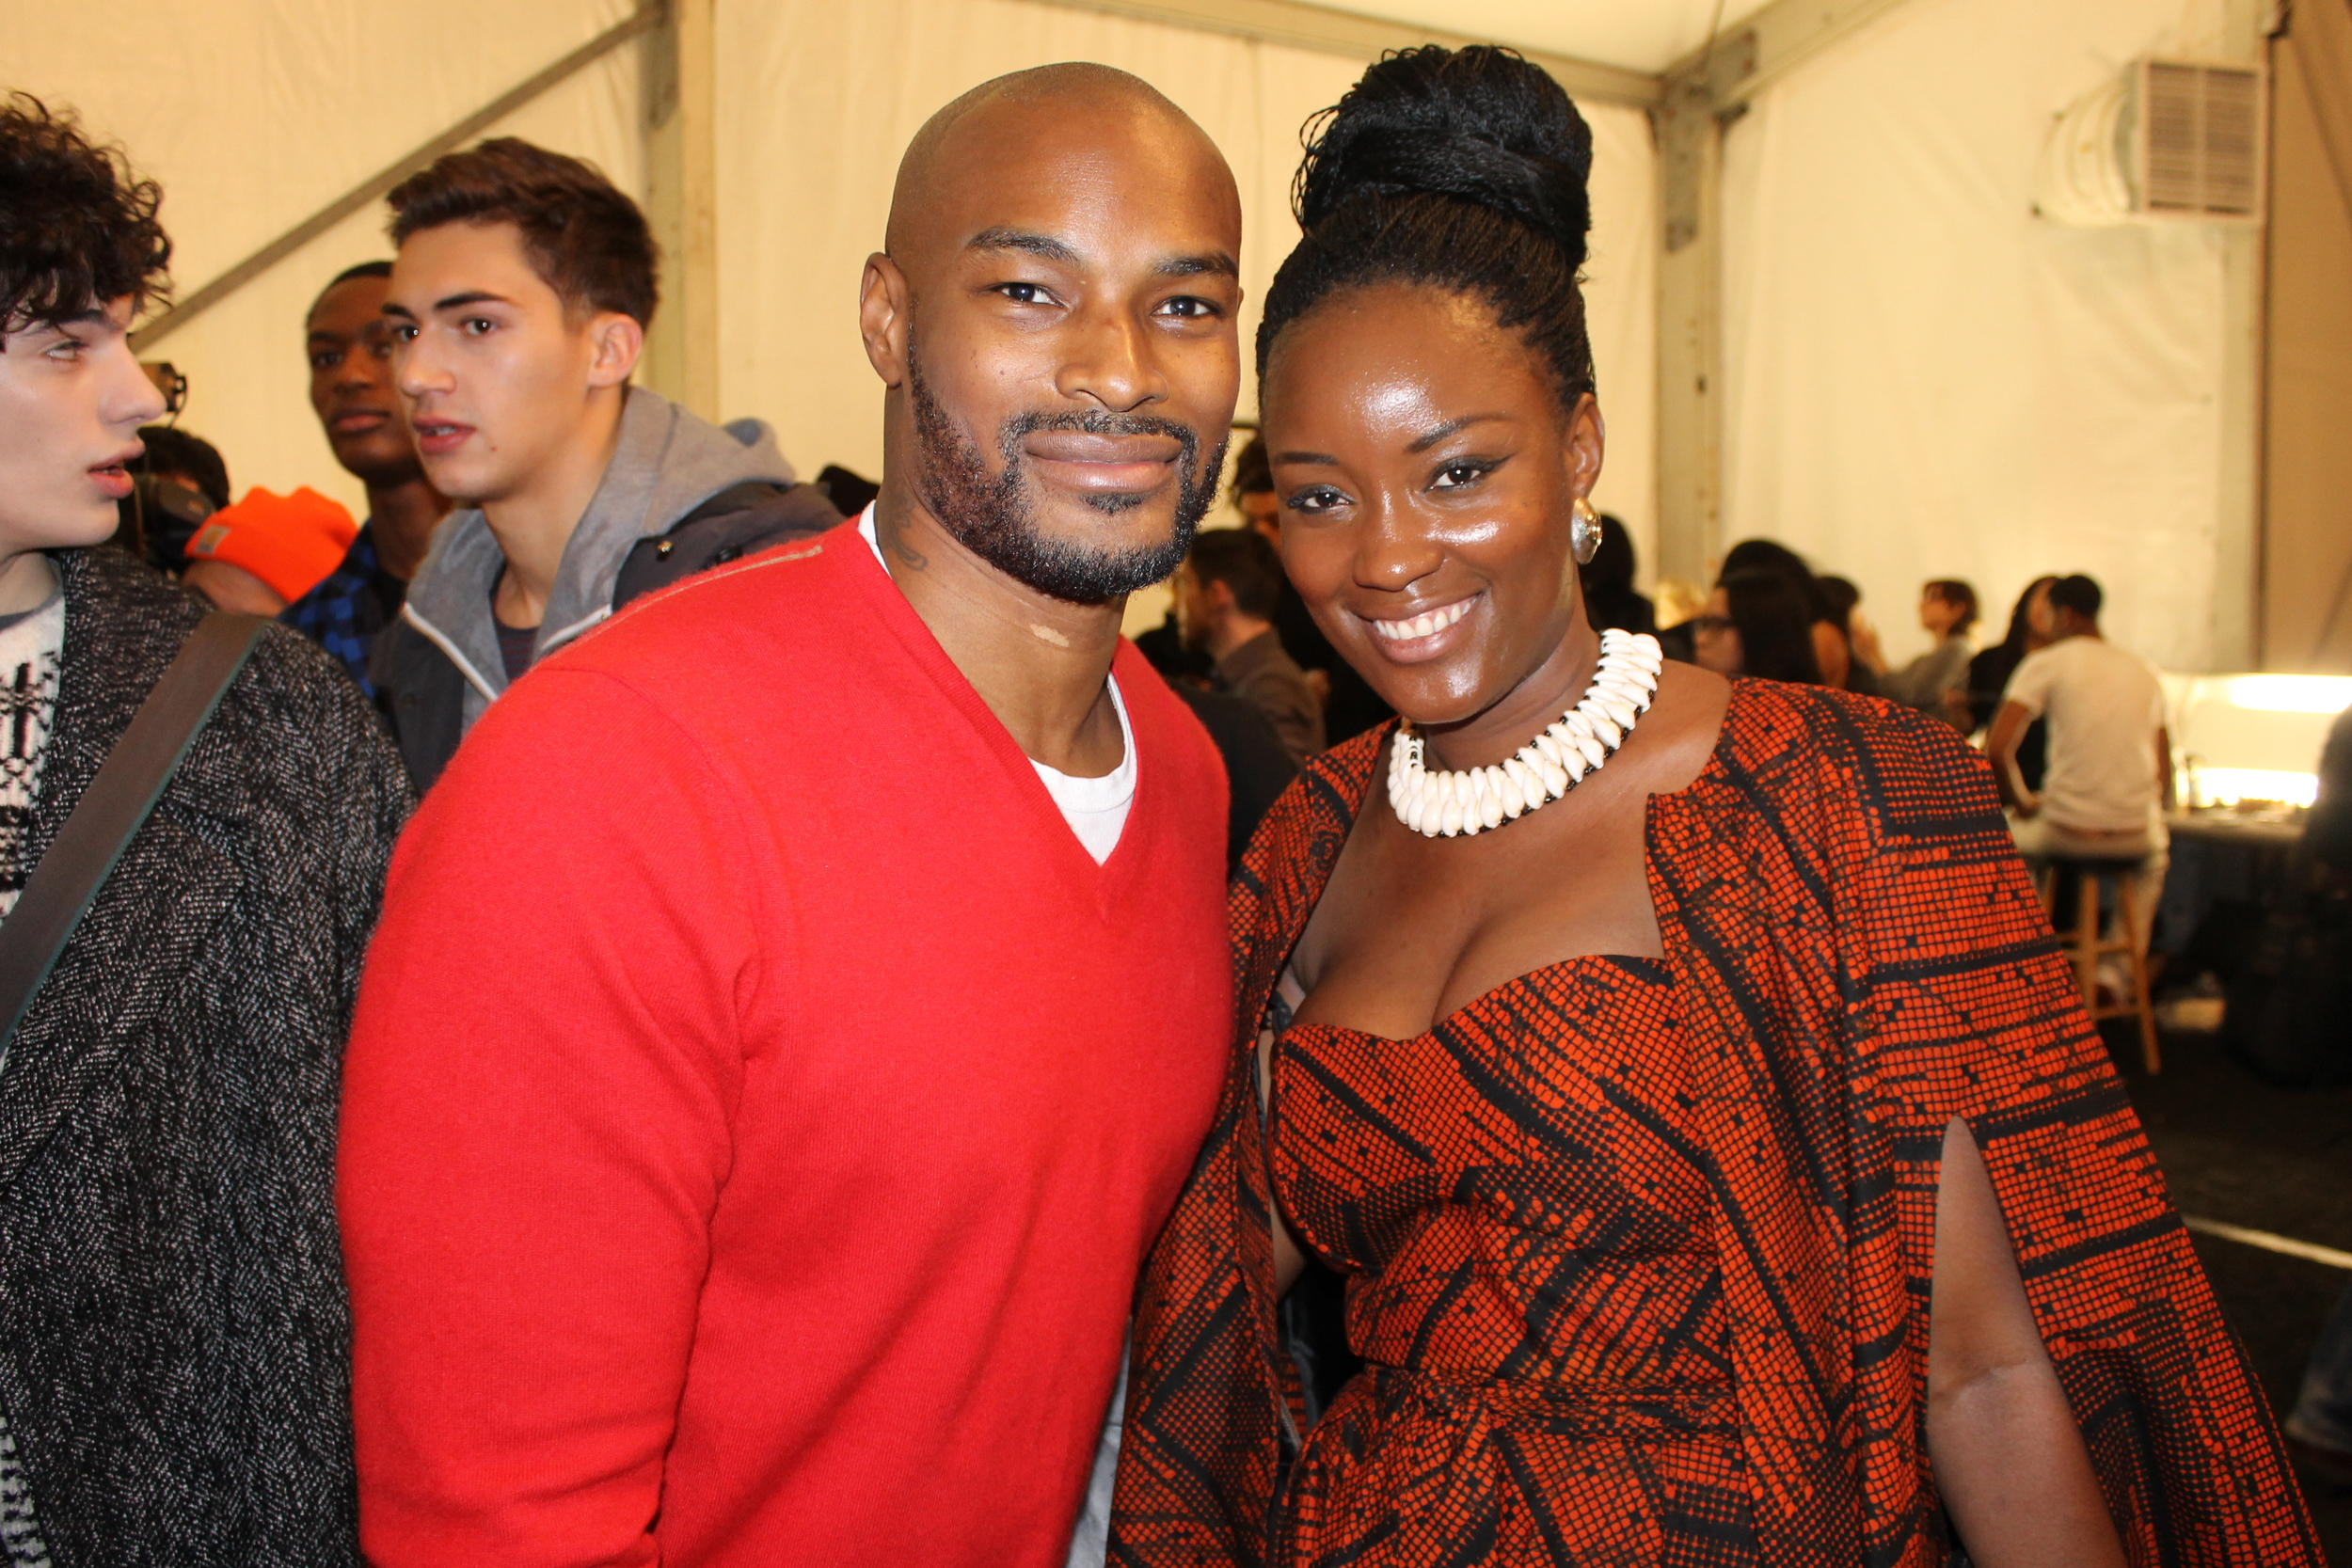 Mary Ann KaiKai with Tyson Beckford